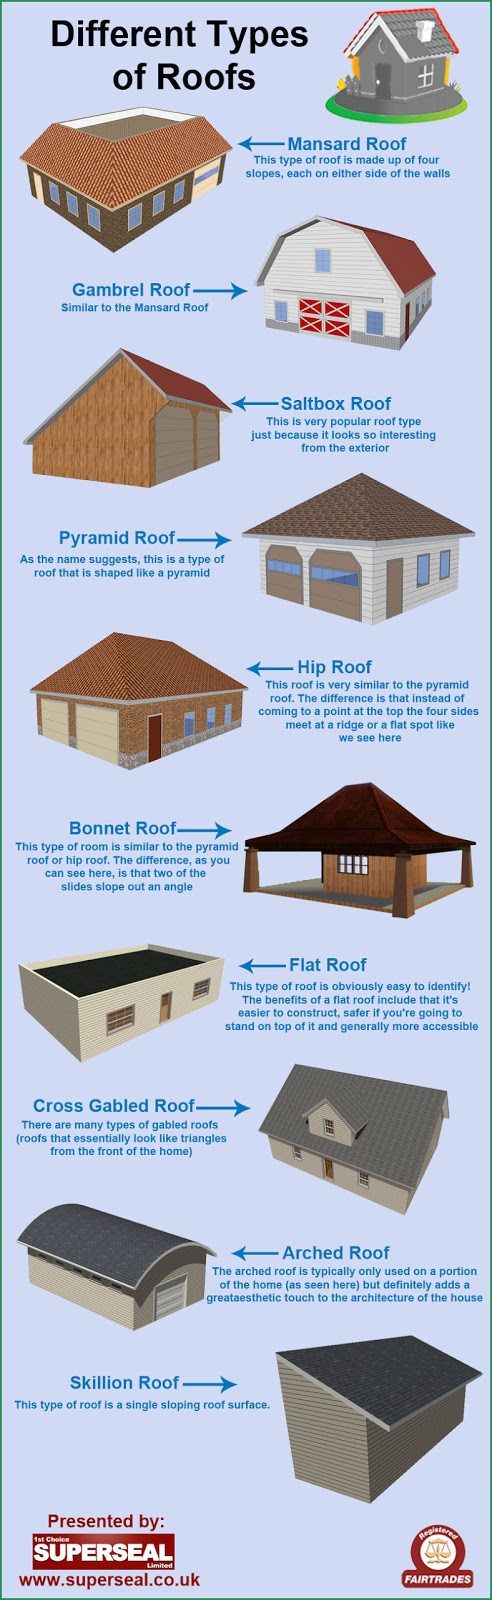 All seasons roofing in utah different types of roofs for Types of roofing